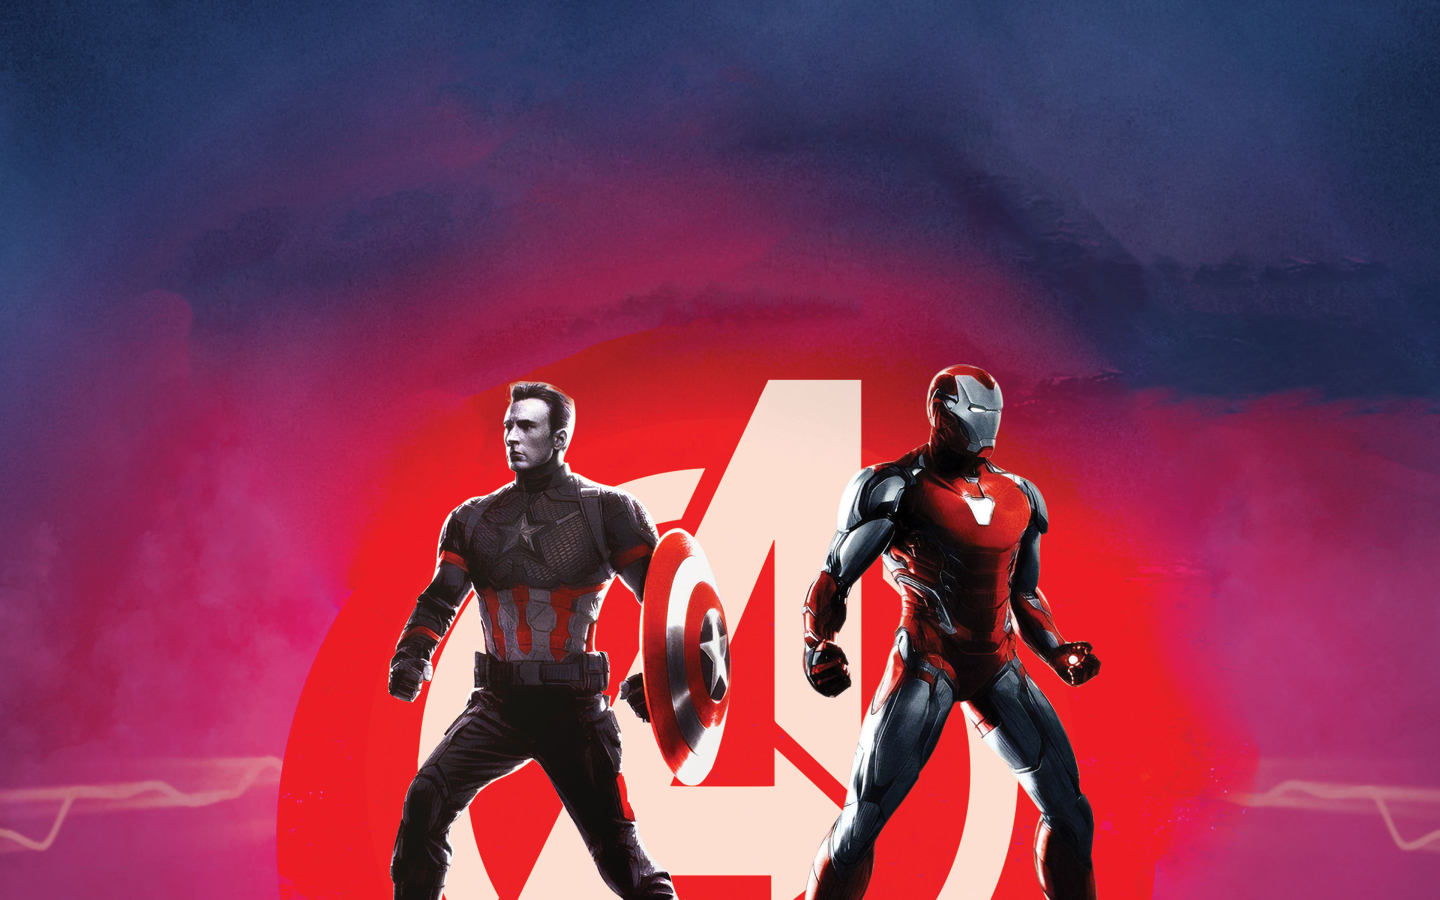 Captain America and Iron Man Avengers Endgame Wallpaper in 1440x900 Resolution